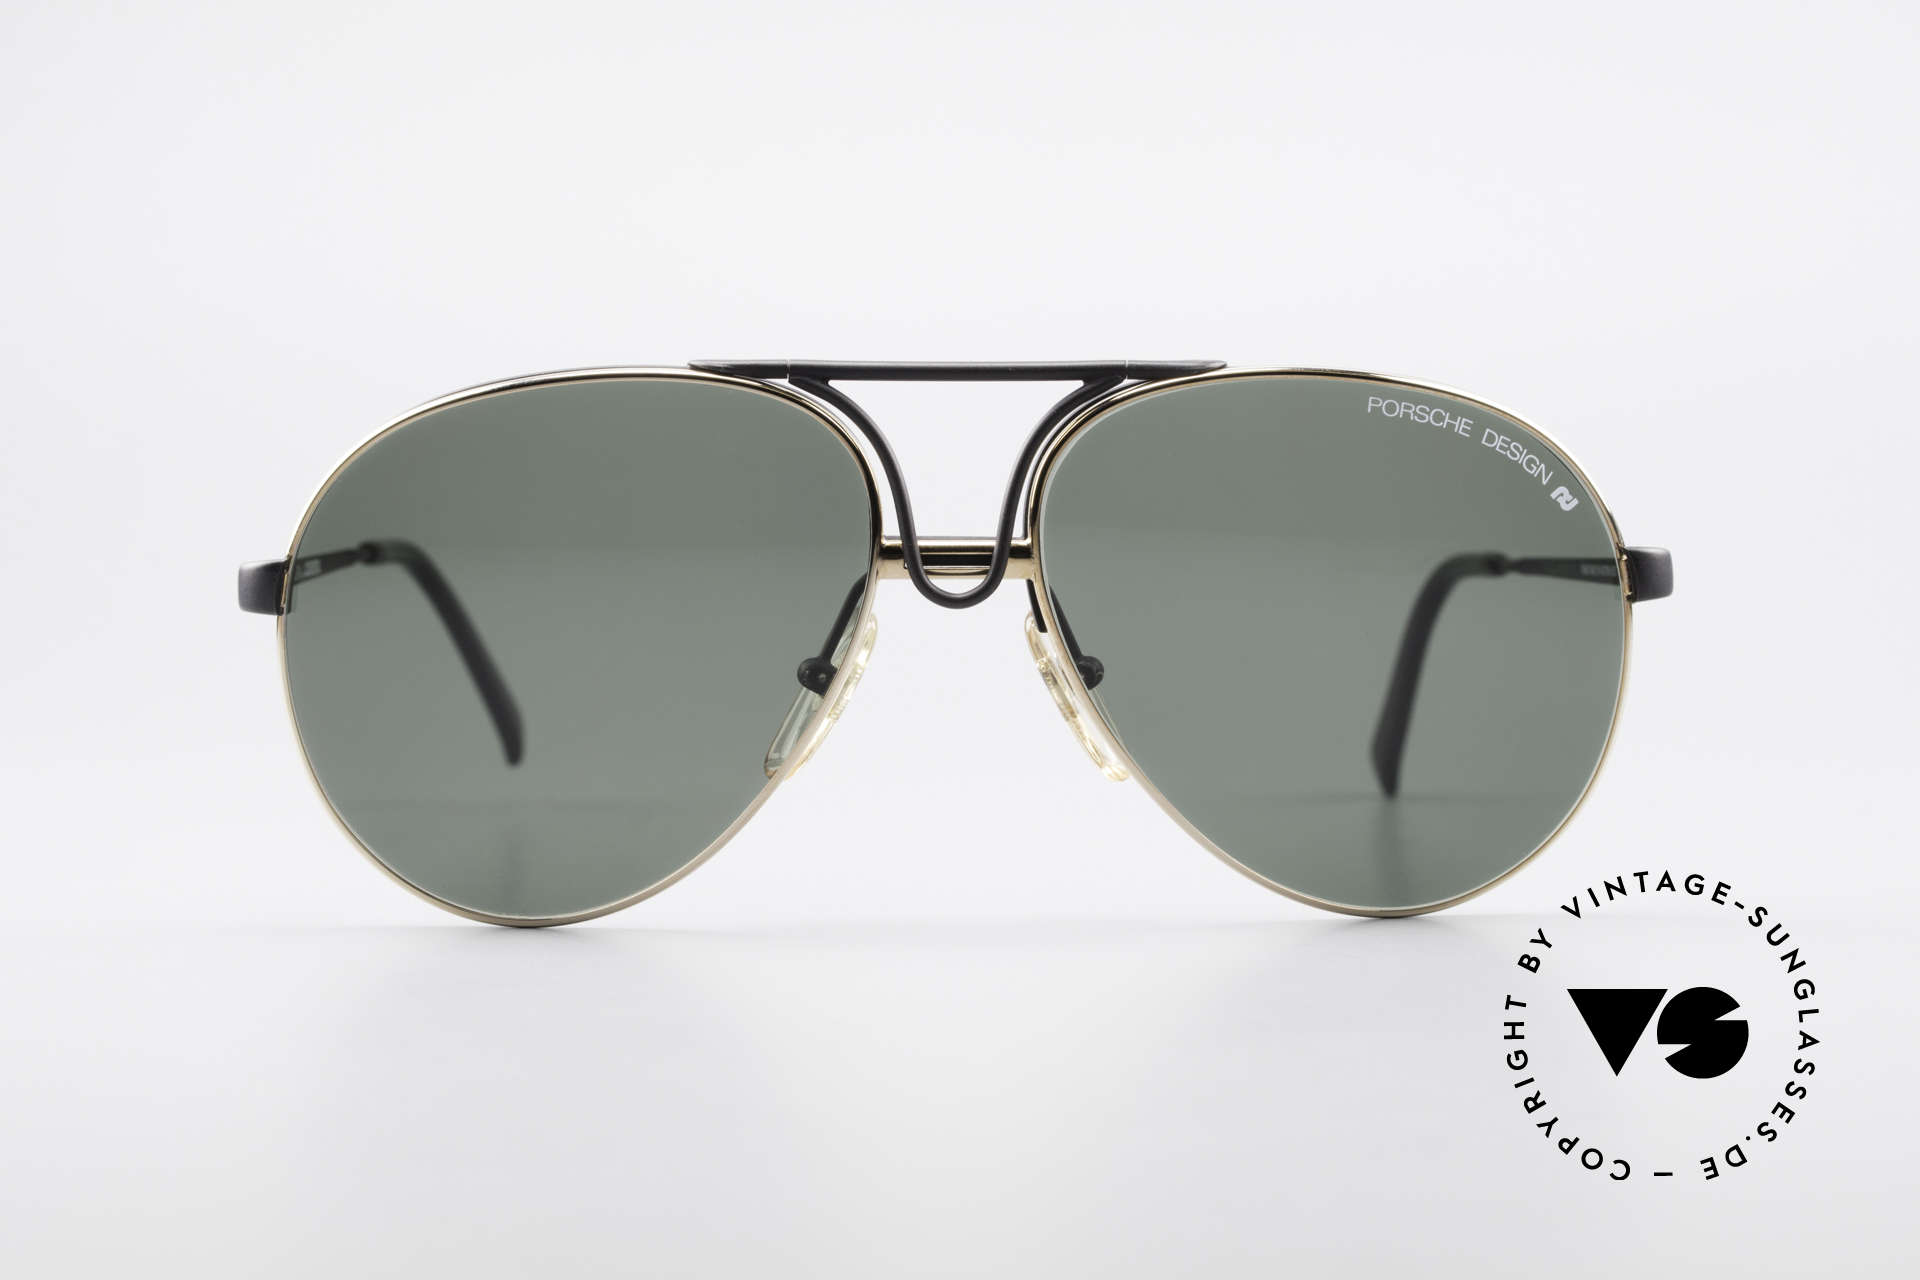 Porsche 5657 Interchangeable Frame 90's, frame with interchangeable front parts (lenses), Made for Men